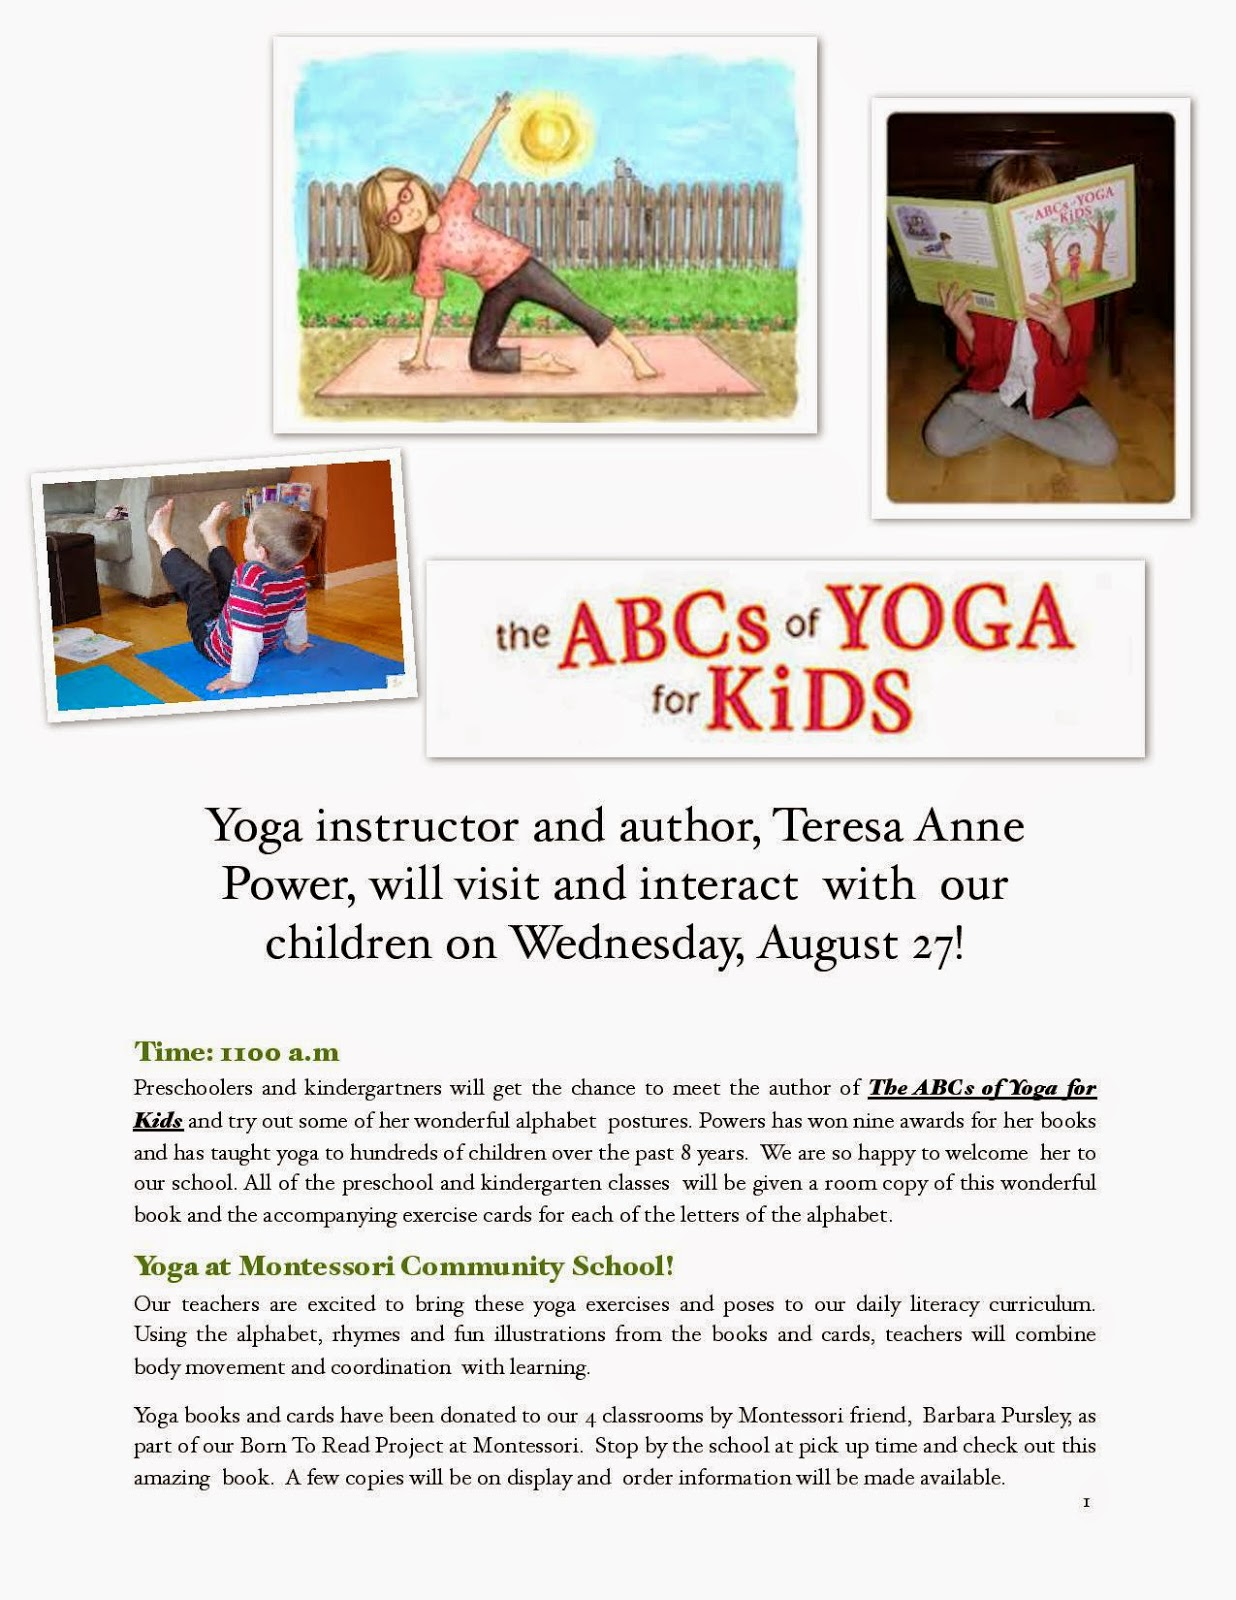 Yoga for kids abc yoga for kids presentations in granville ohio on i will be in granville ohio on wednesday august 27th and will demo my childrens book the abcs of yoga for kids altavistaventures Images